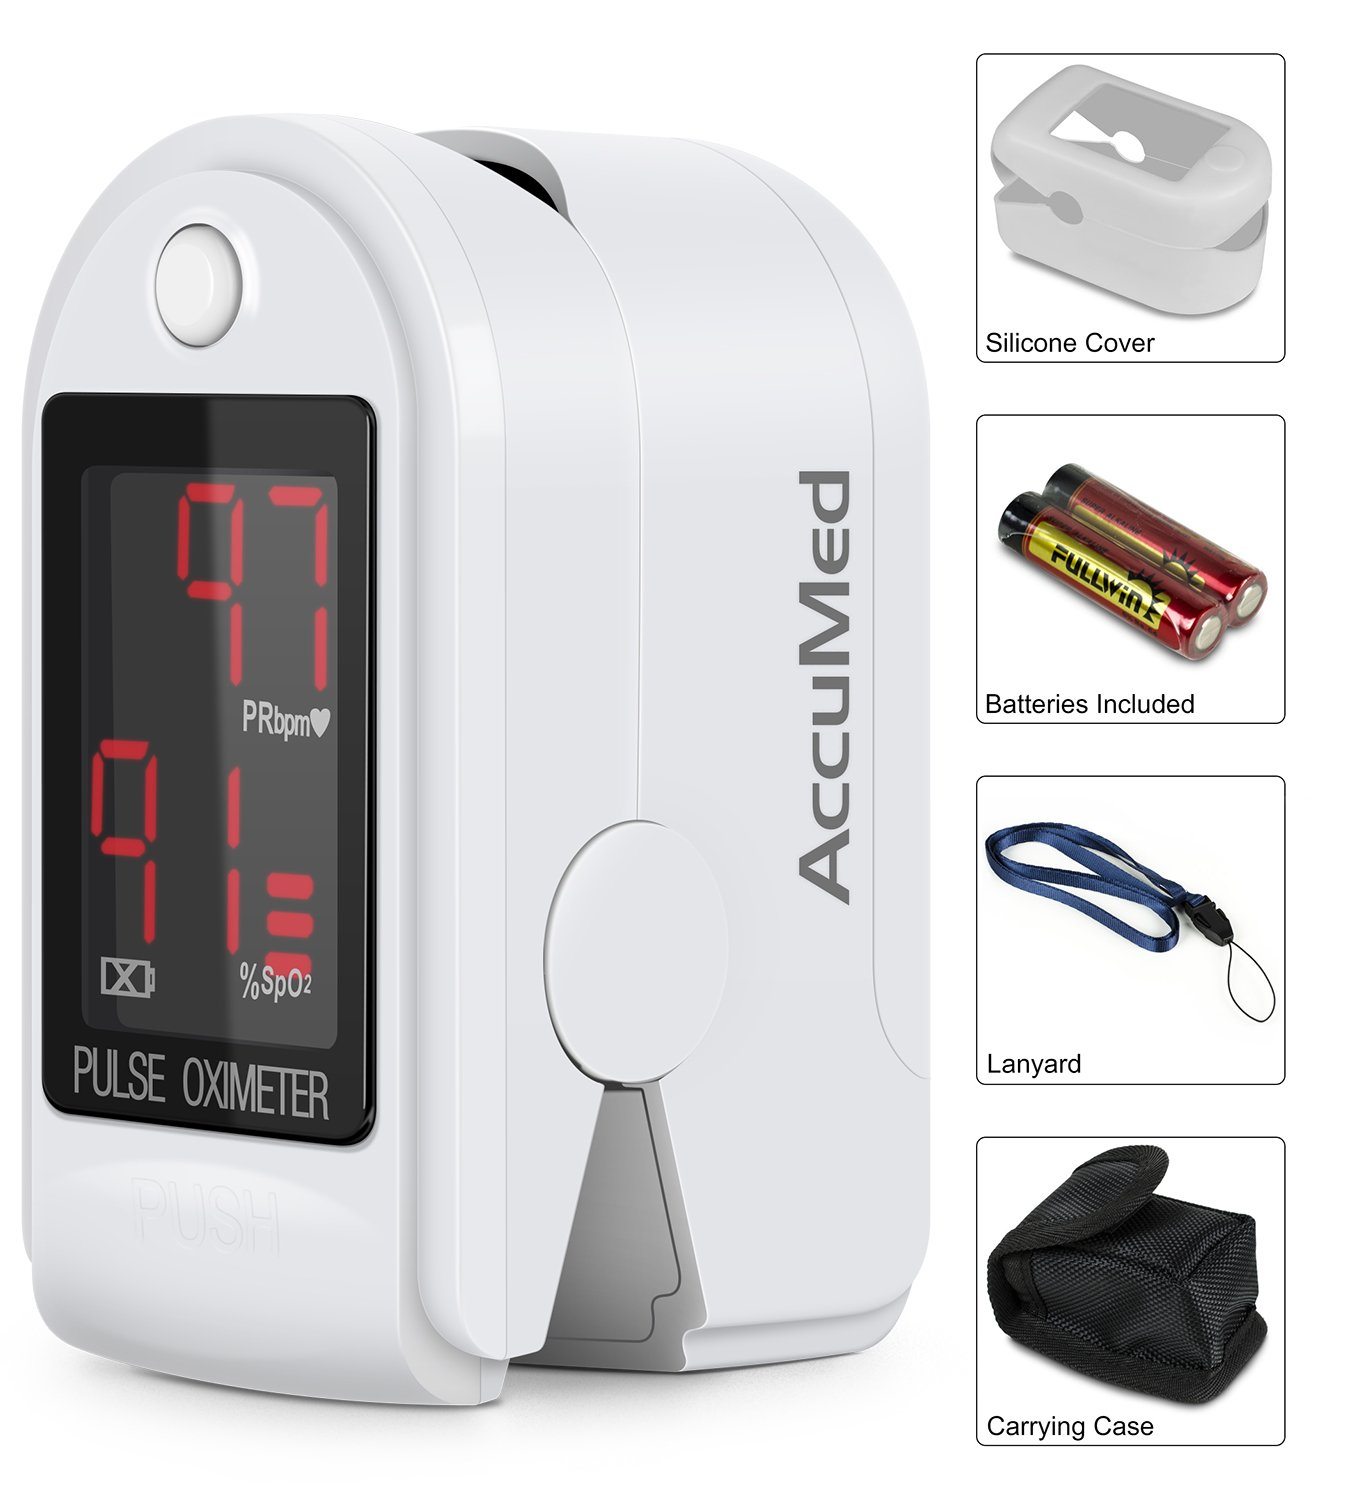 AccuMed CMS-50DL Pulse Oximeter Finger Pulse Blood Oxygen SpO2 Monitor w/Carrying case, Landyard Silicon Case & Battery (White)